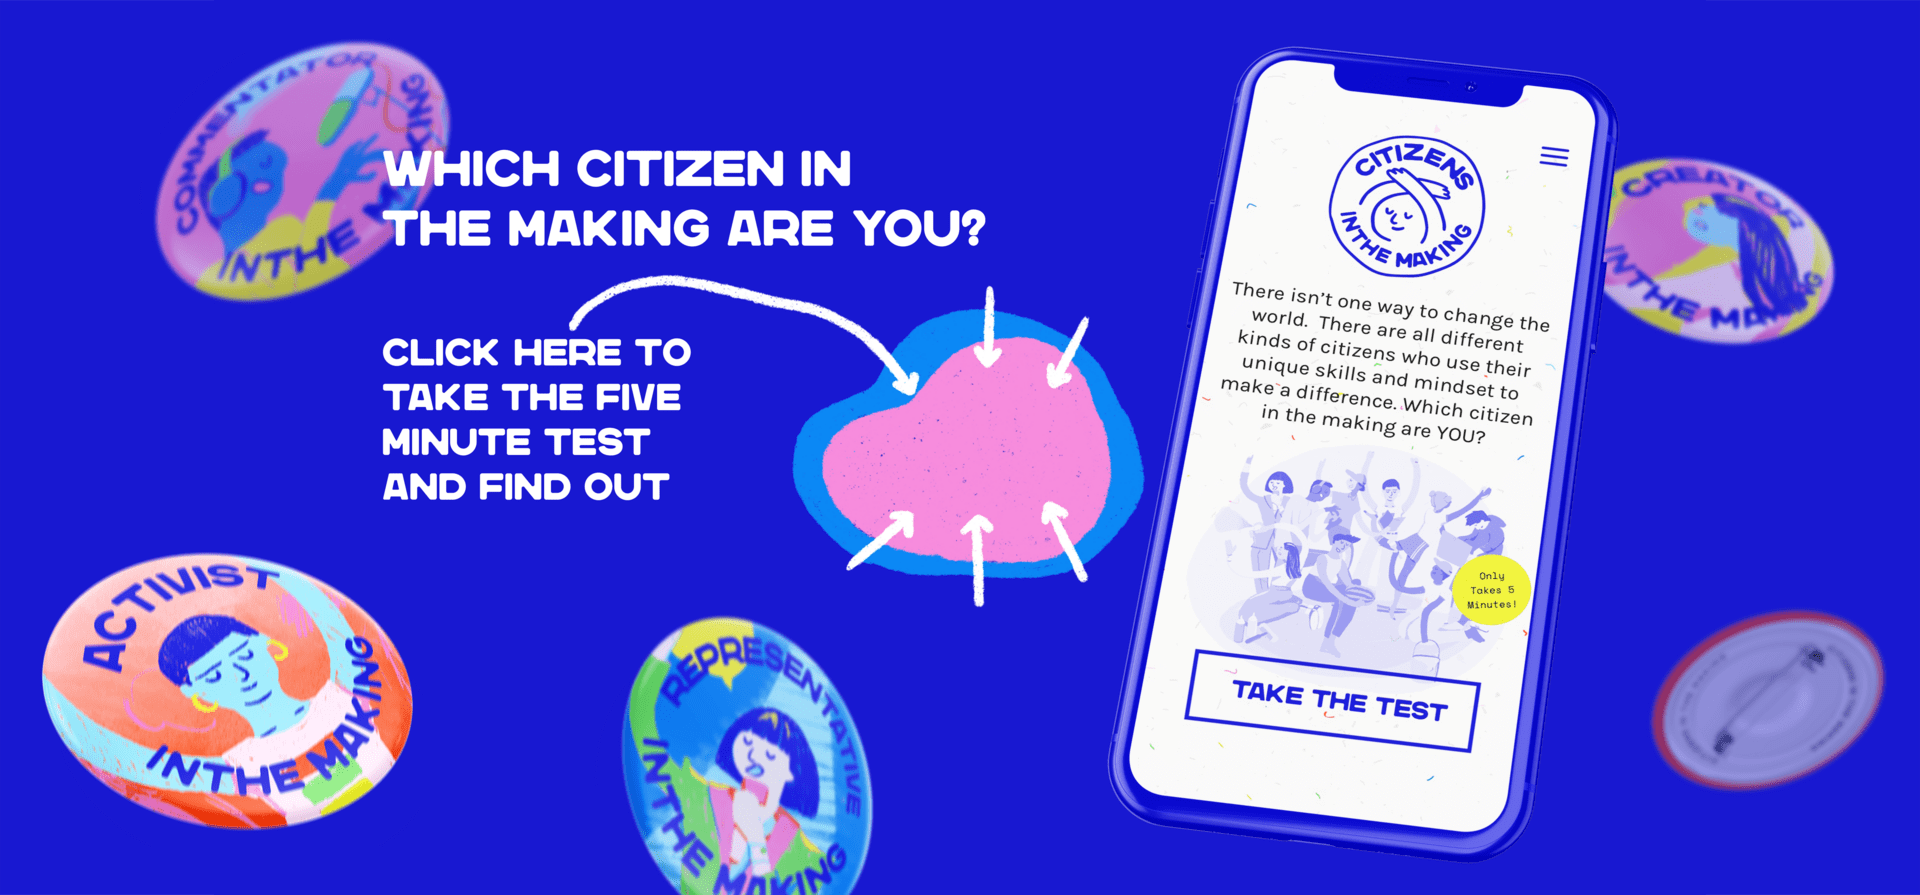 Which Citizen in the Making are you?